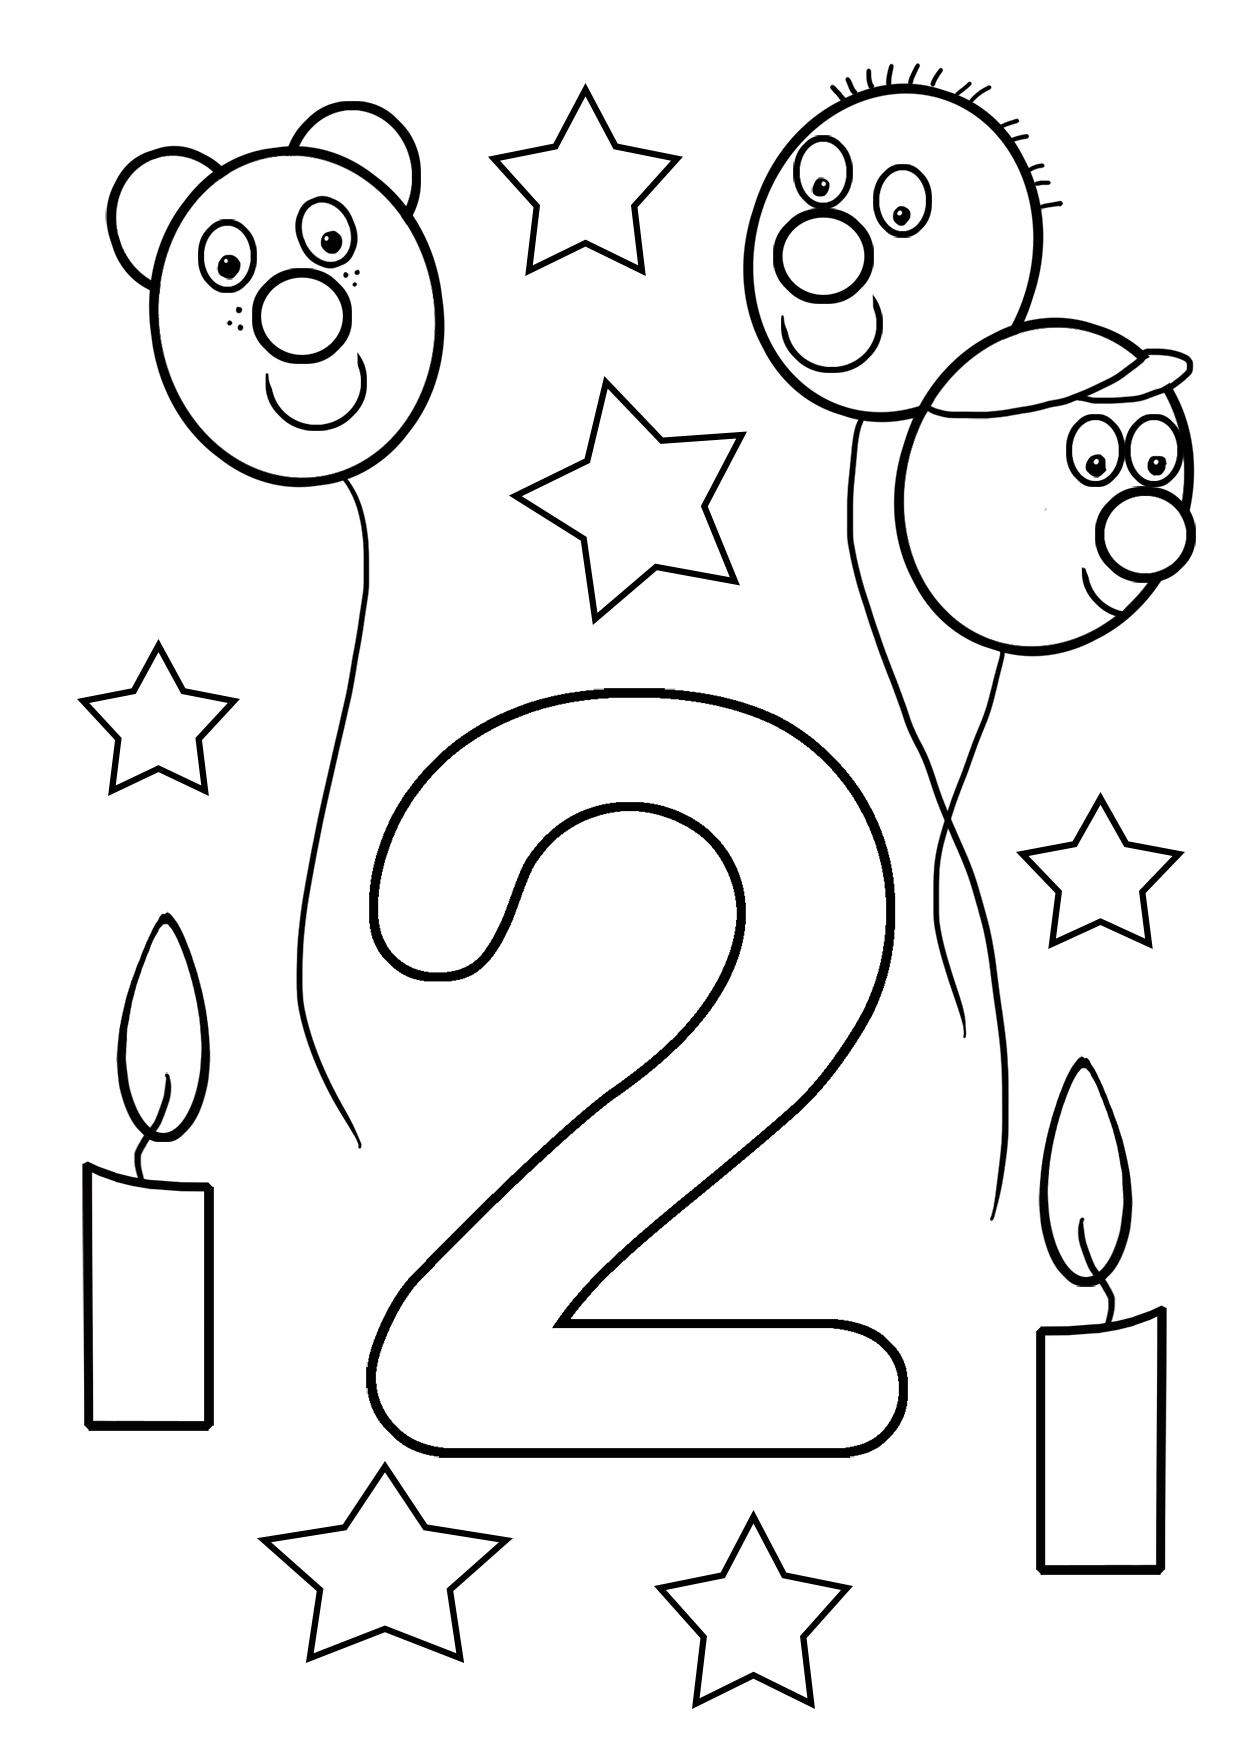 happy 2nd birthday coloring pages 2nd birthday cake coloring page for kids holiday coloring coloring happy birthday 2nd pages